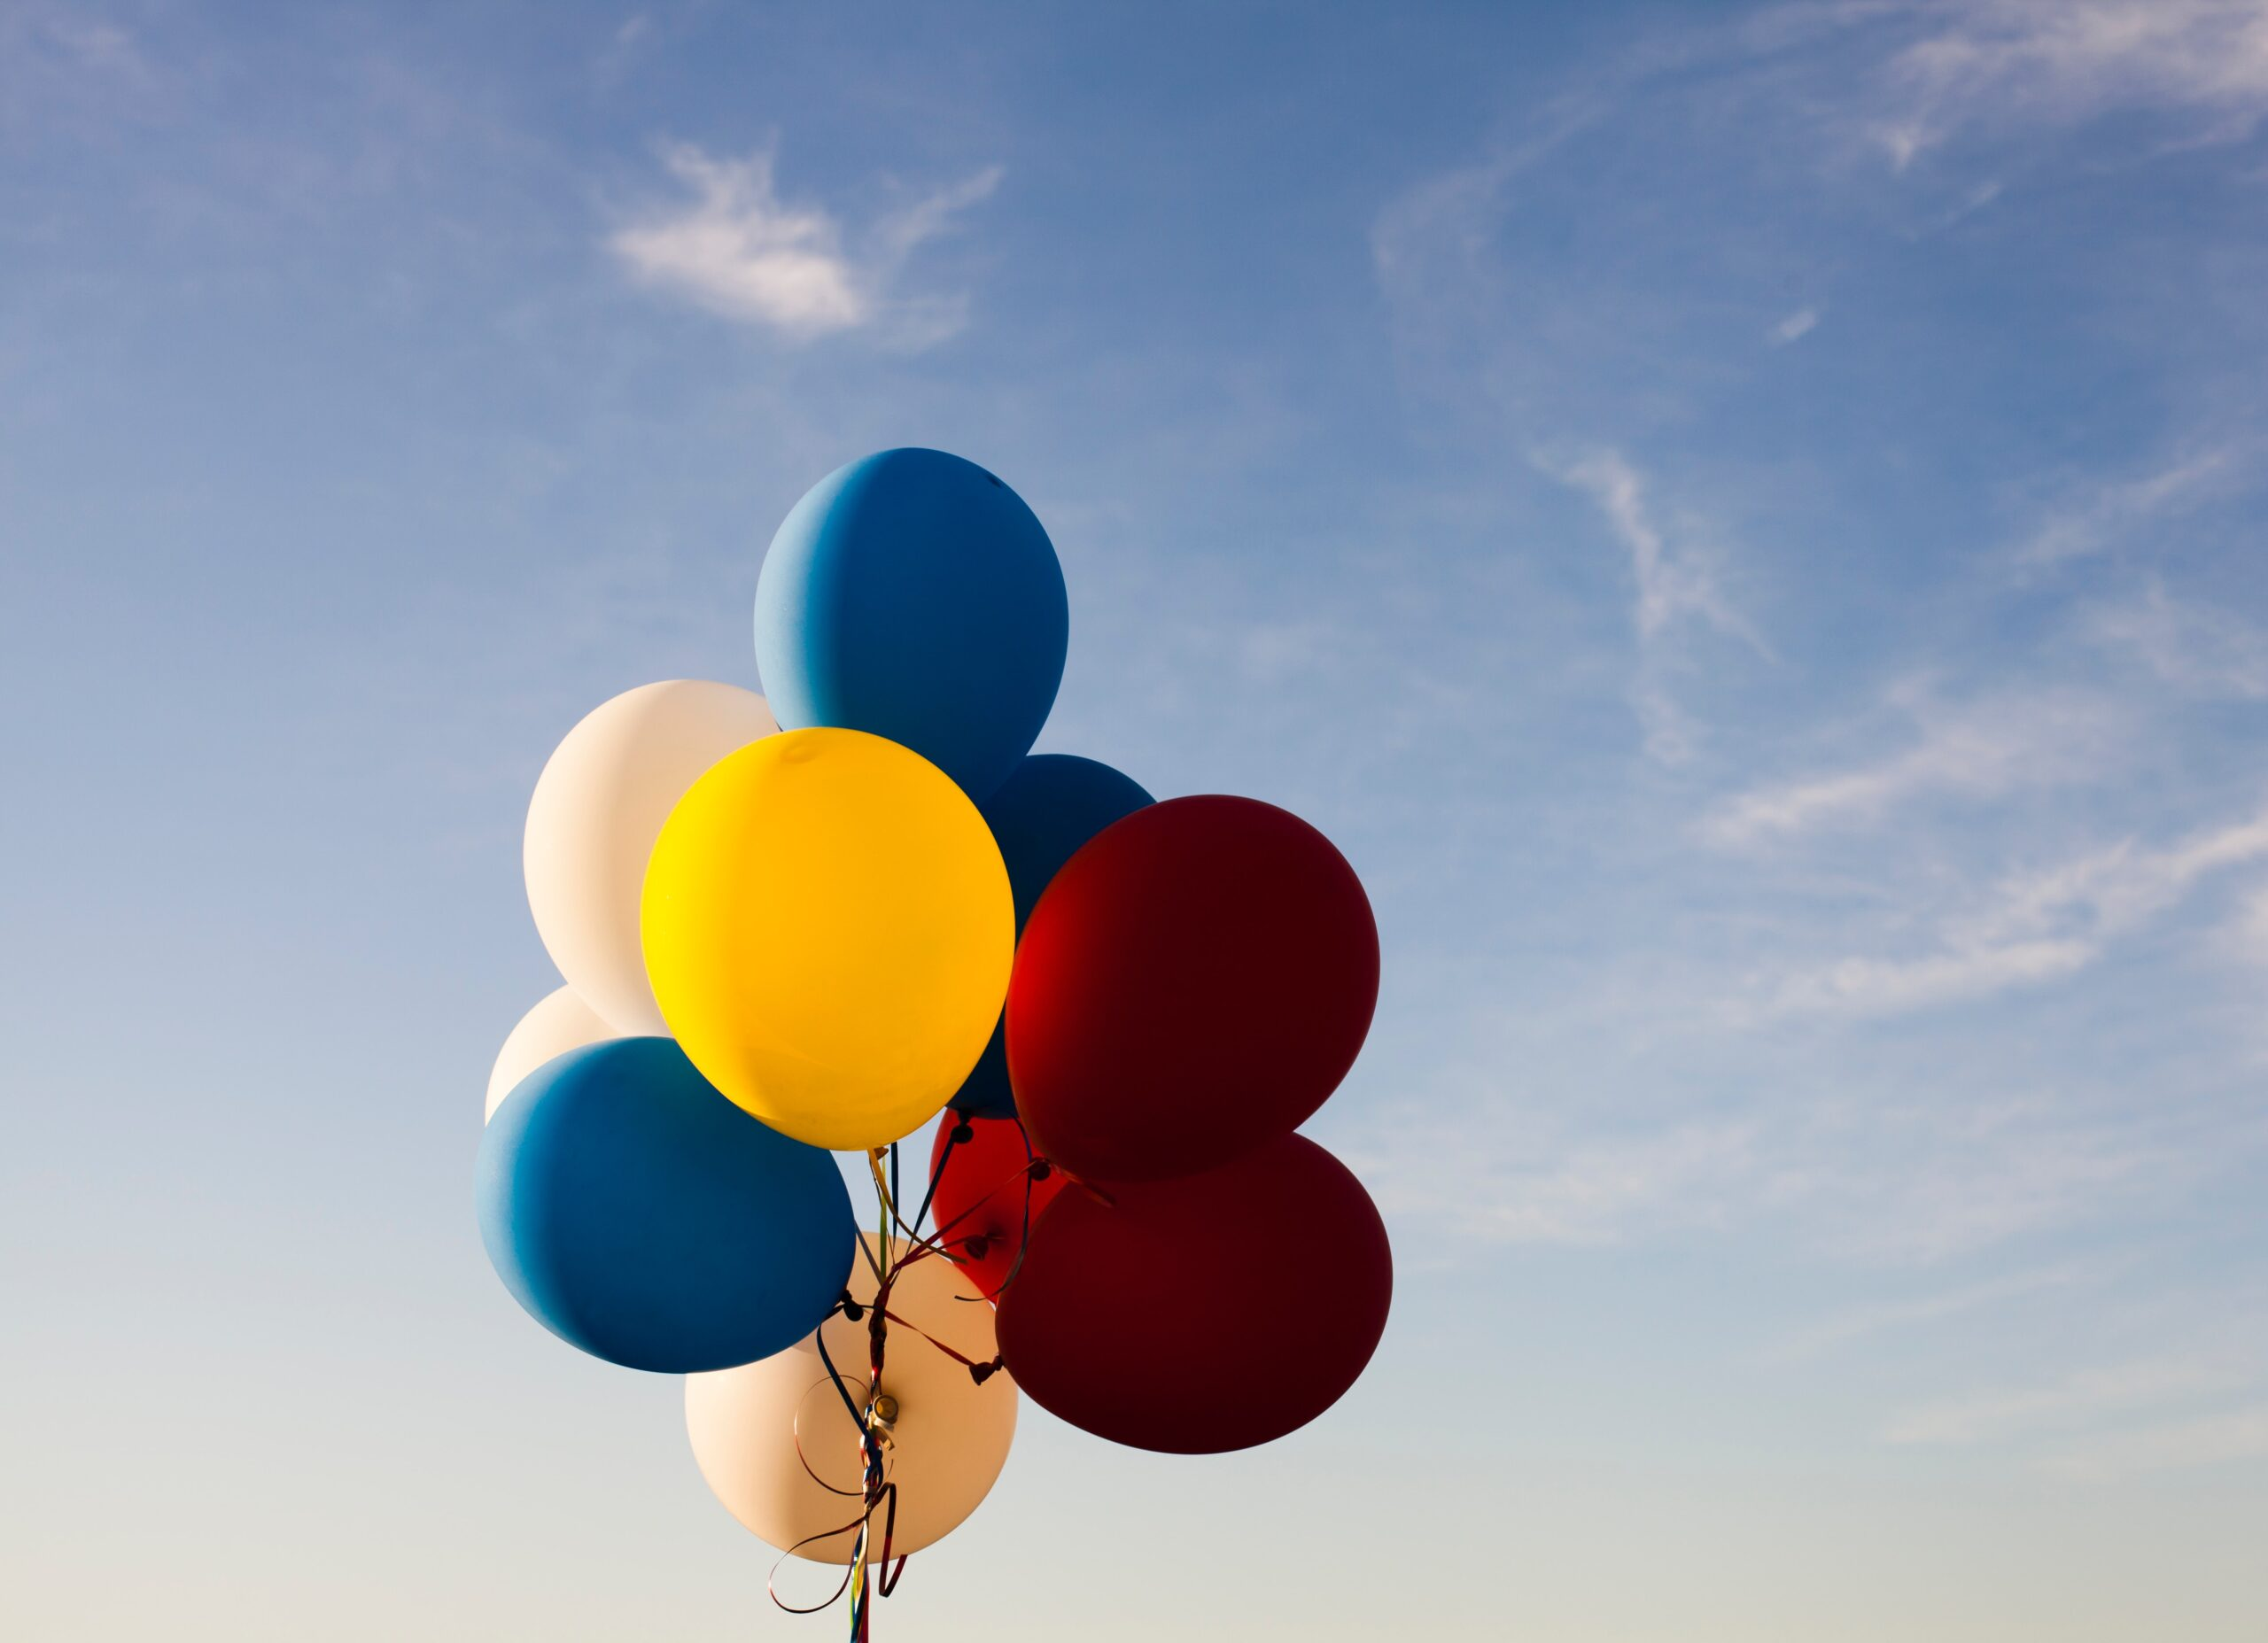 colourful balloons in the sky